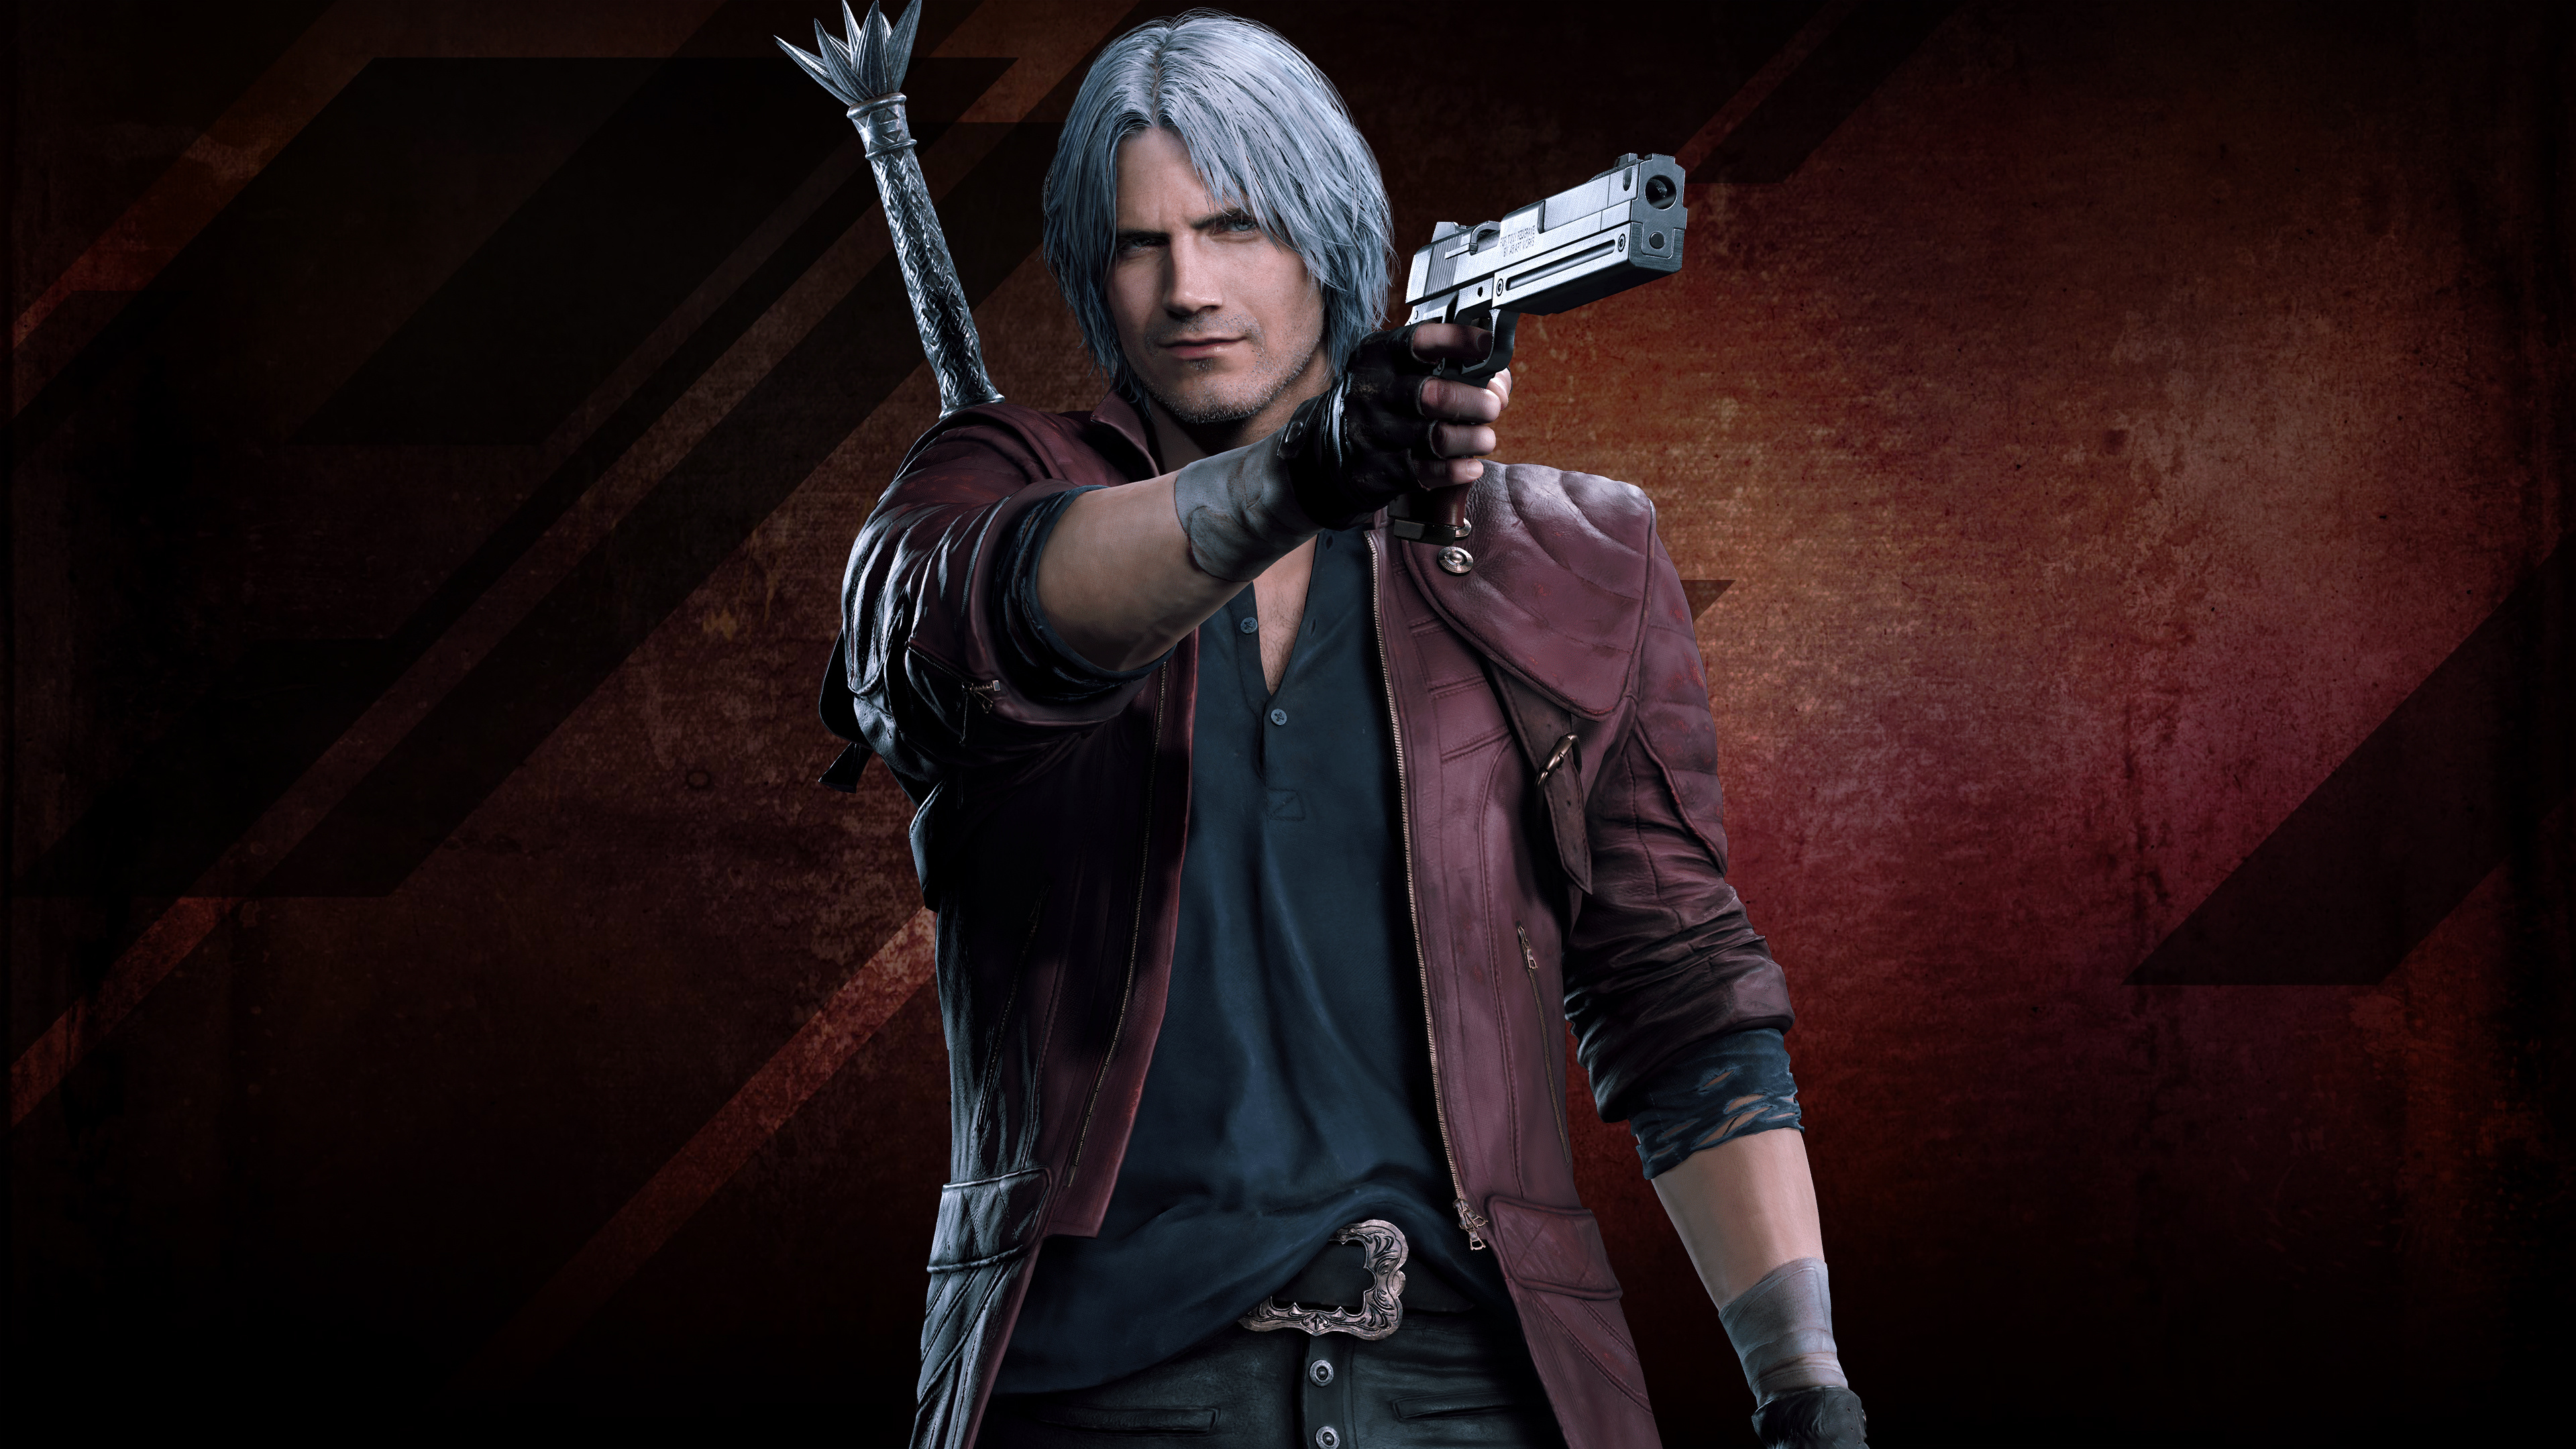 Devil May Cry 5 Dante 4k Ultra Hd Wallpaper Background Image